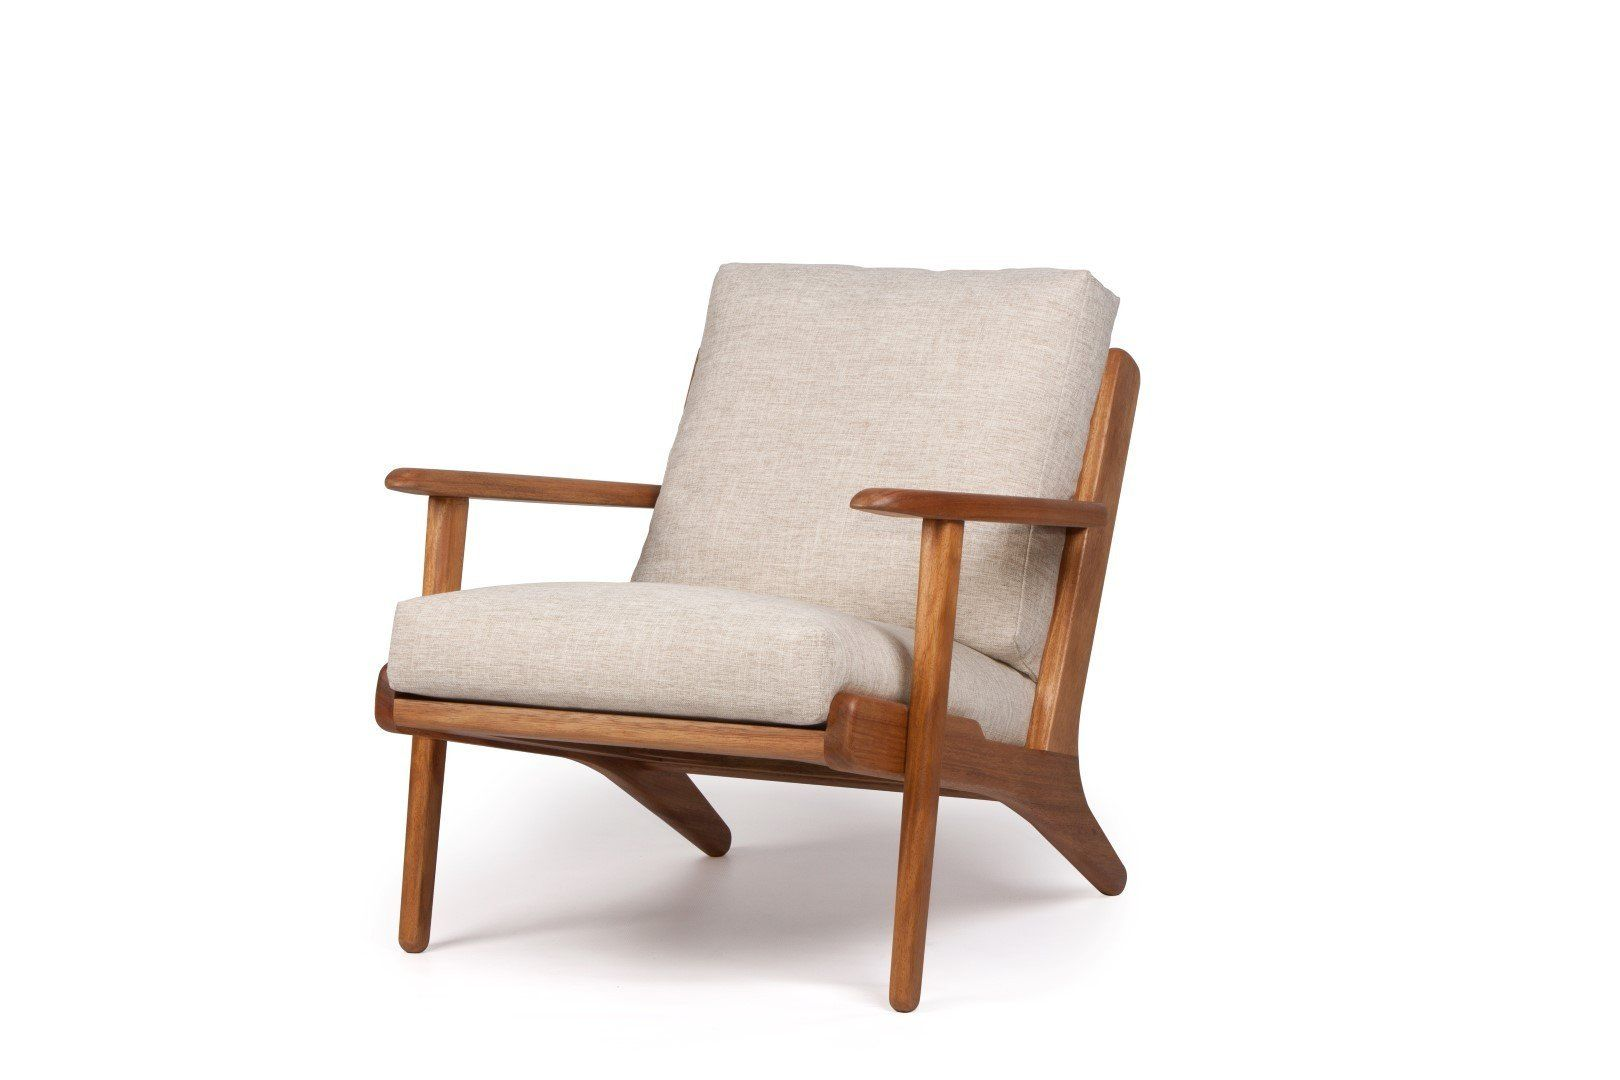 Cushion Seats For Map Arm Chair Tan Leather The Modern